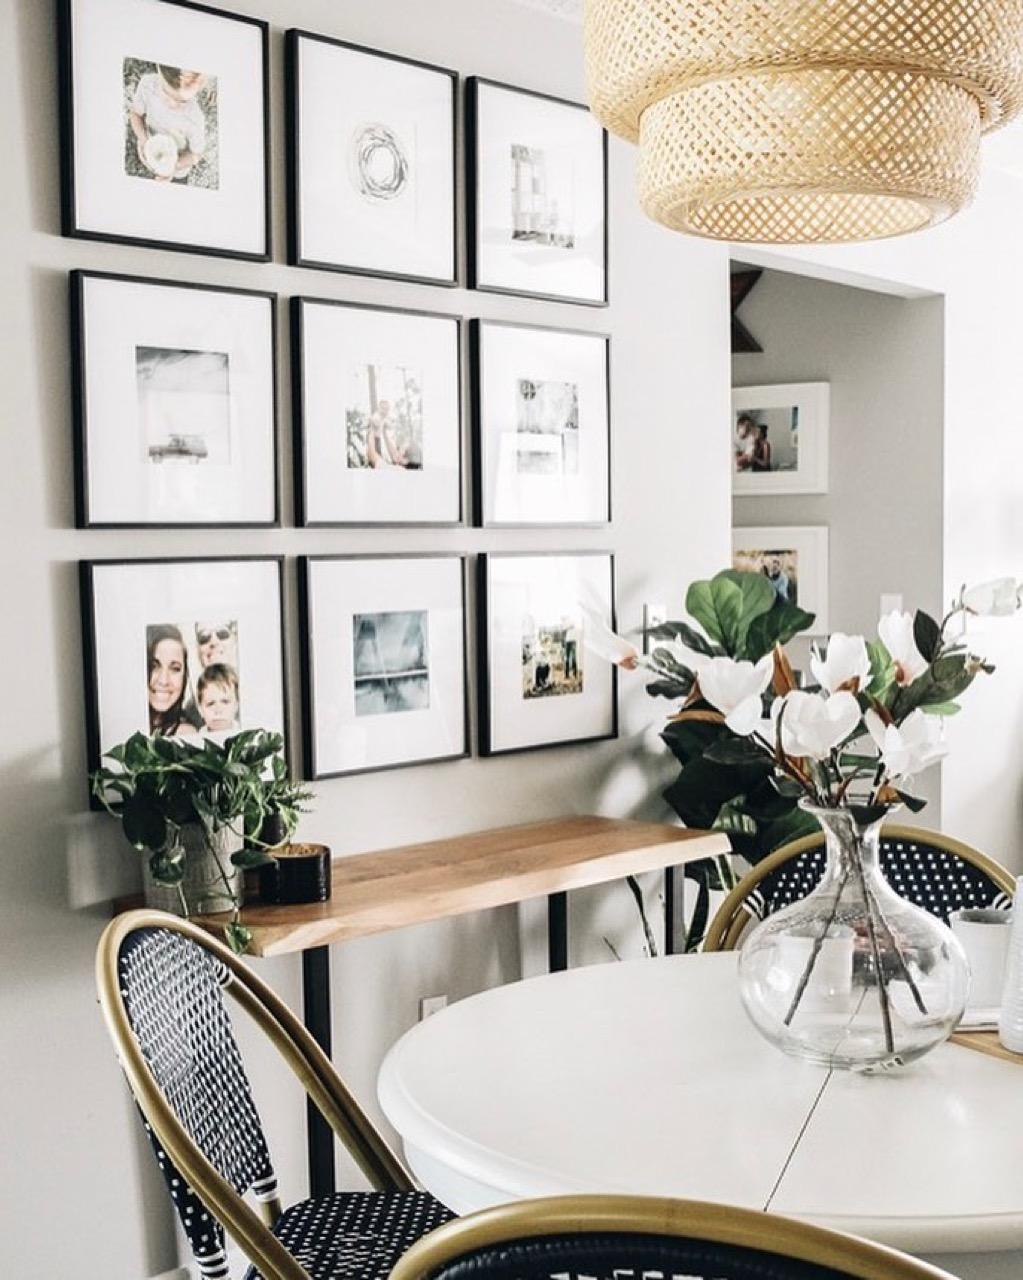 Kitchen decor and frames